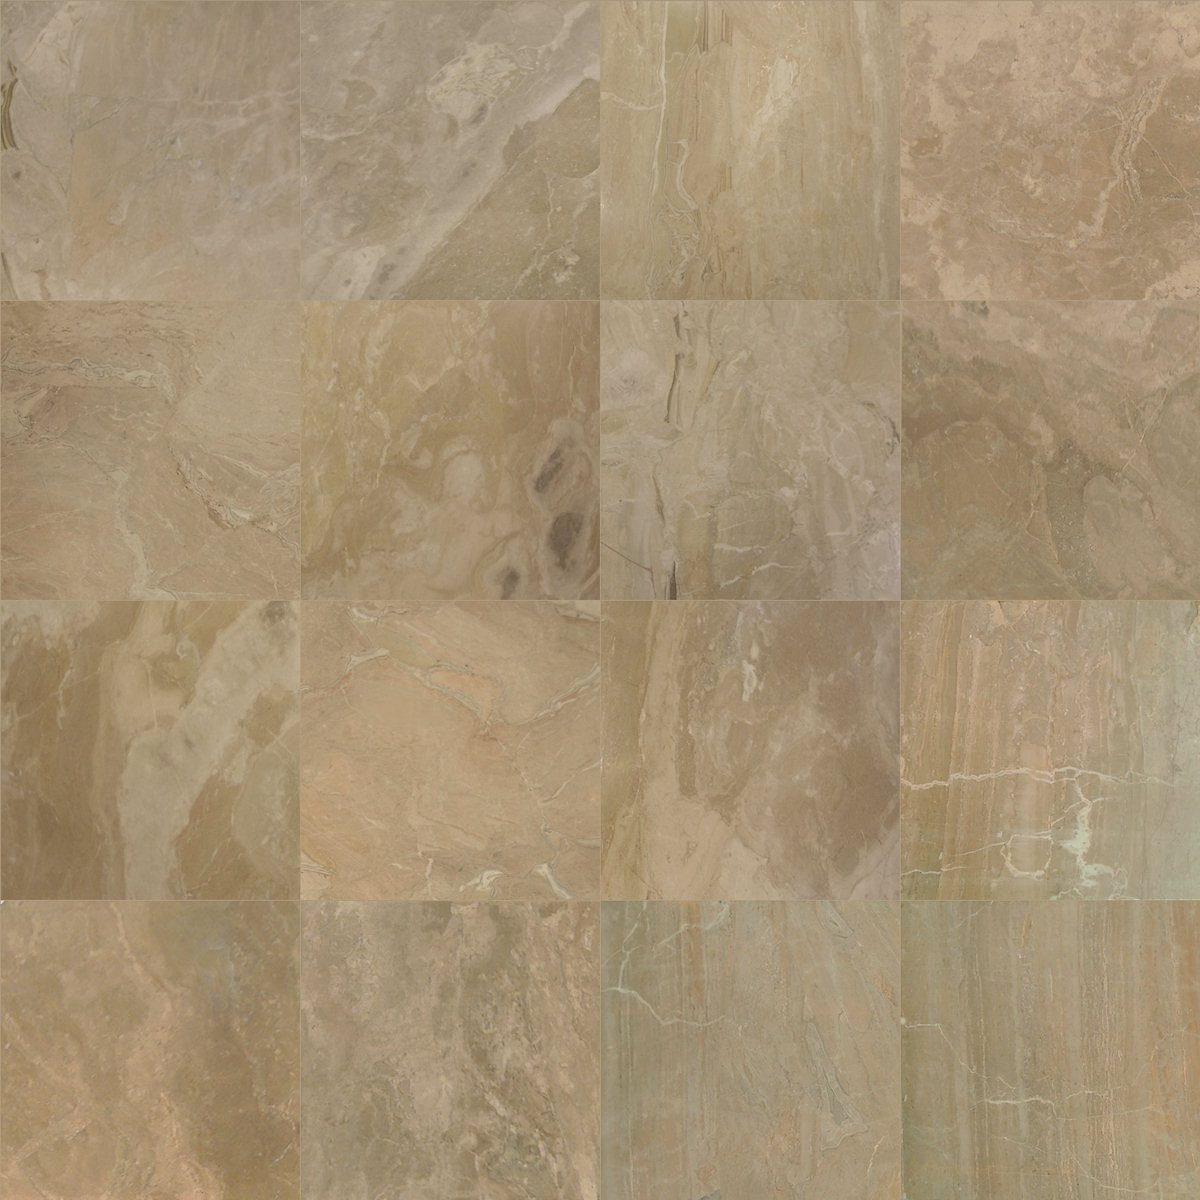 Limestone Kitchen Floor Tiles Uk